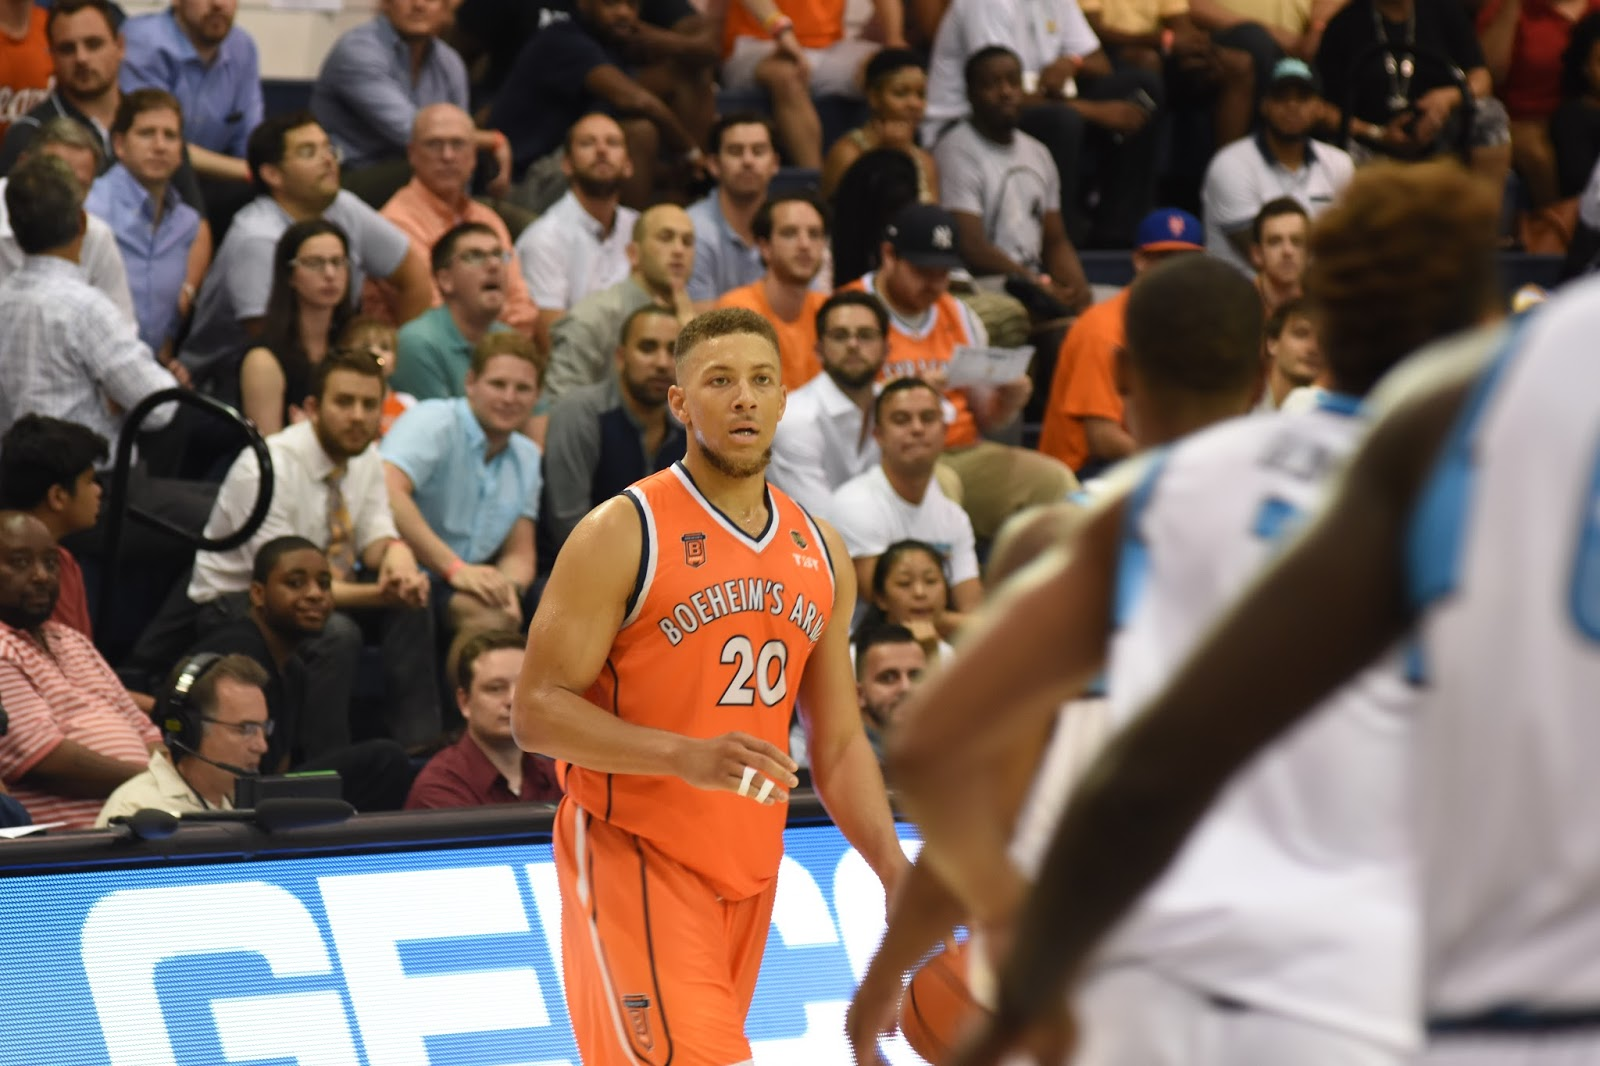 Team FOE Next for Boeheim's Army